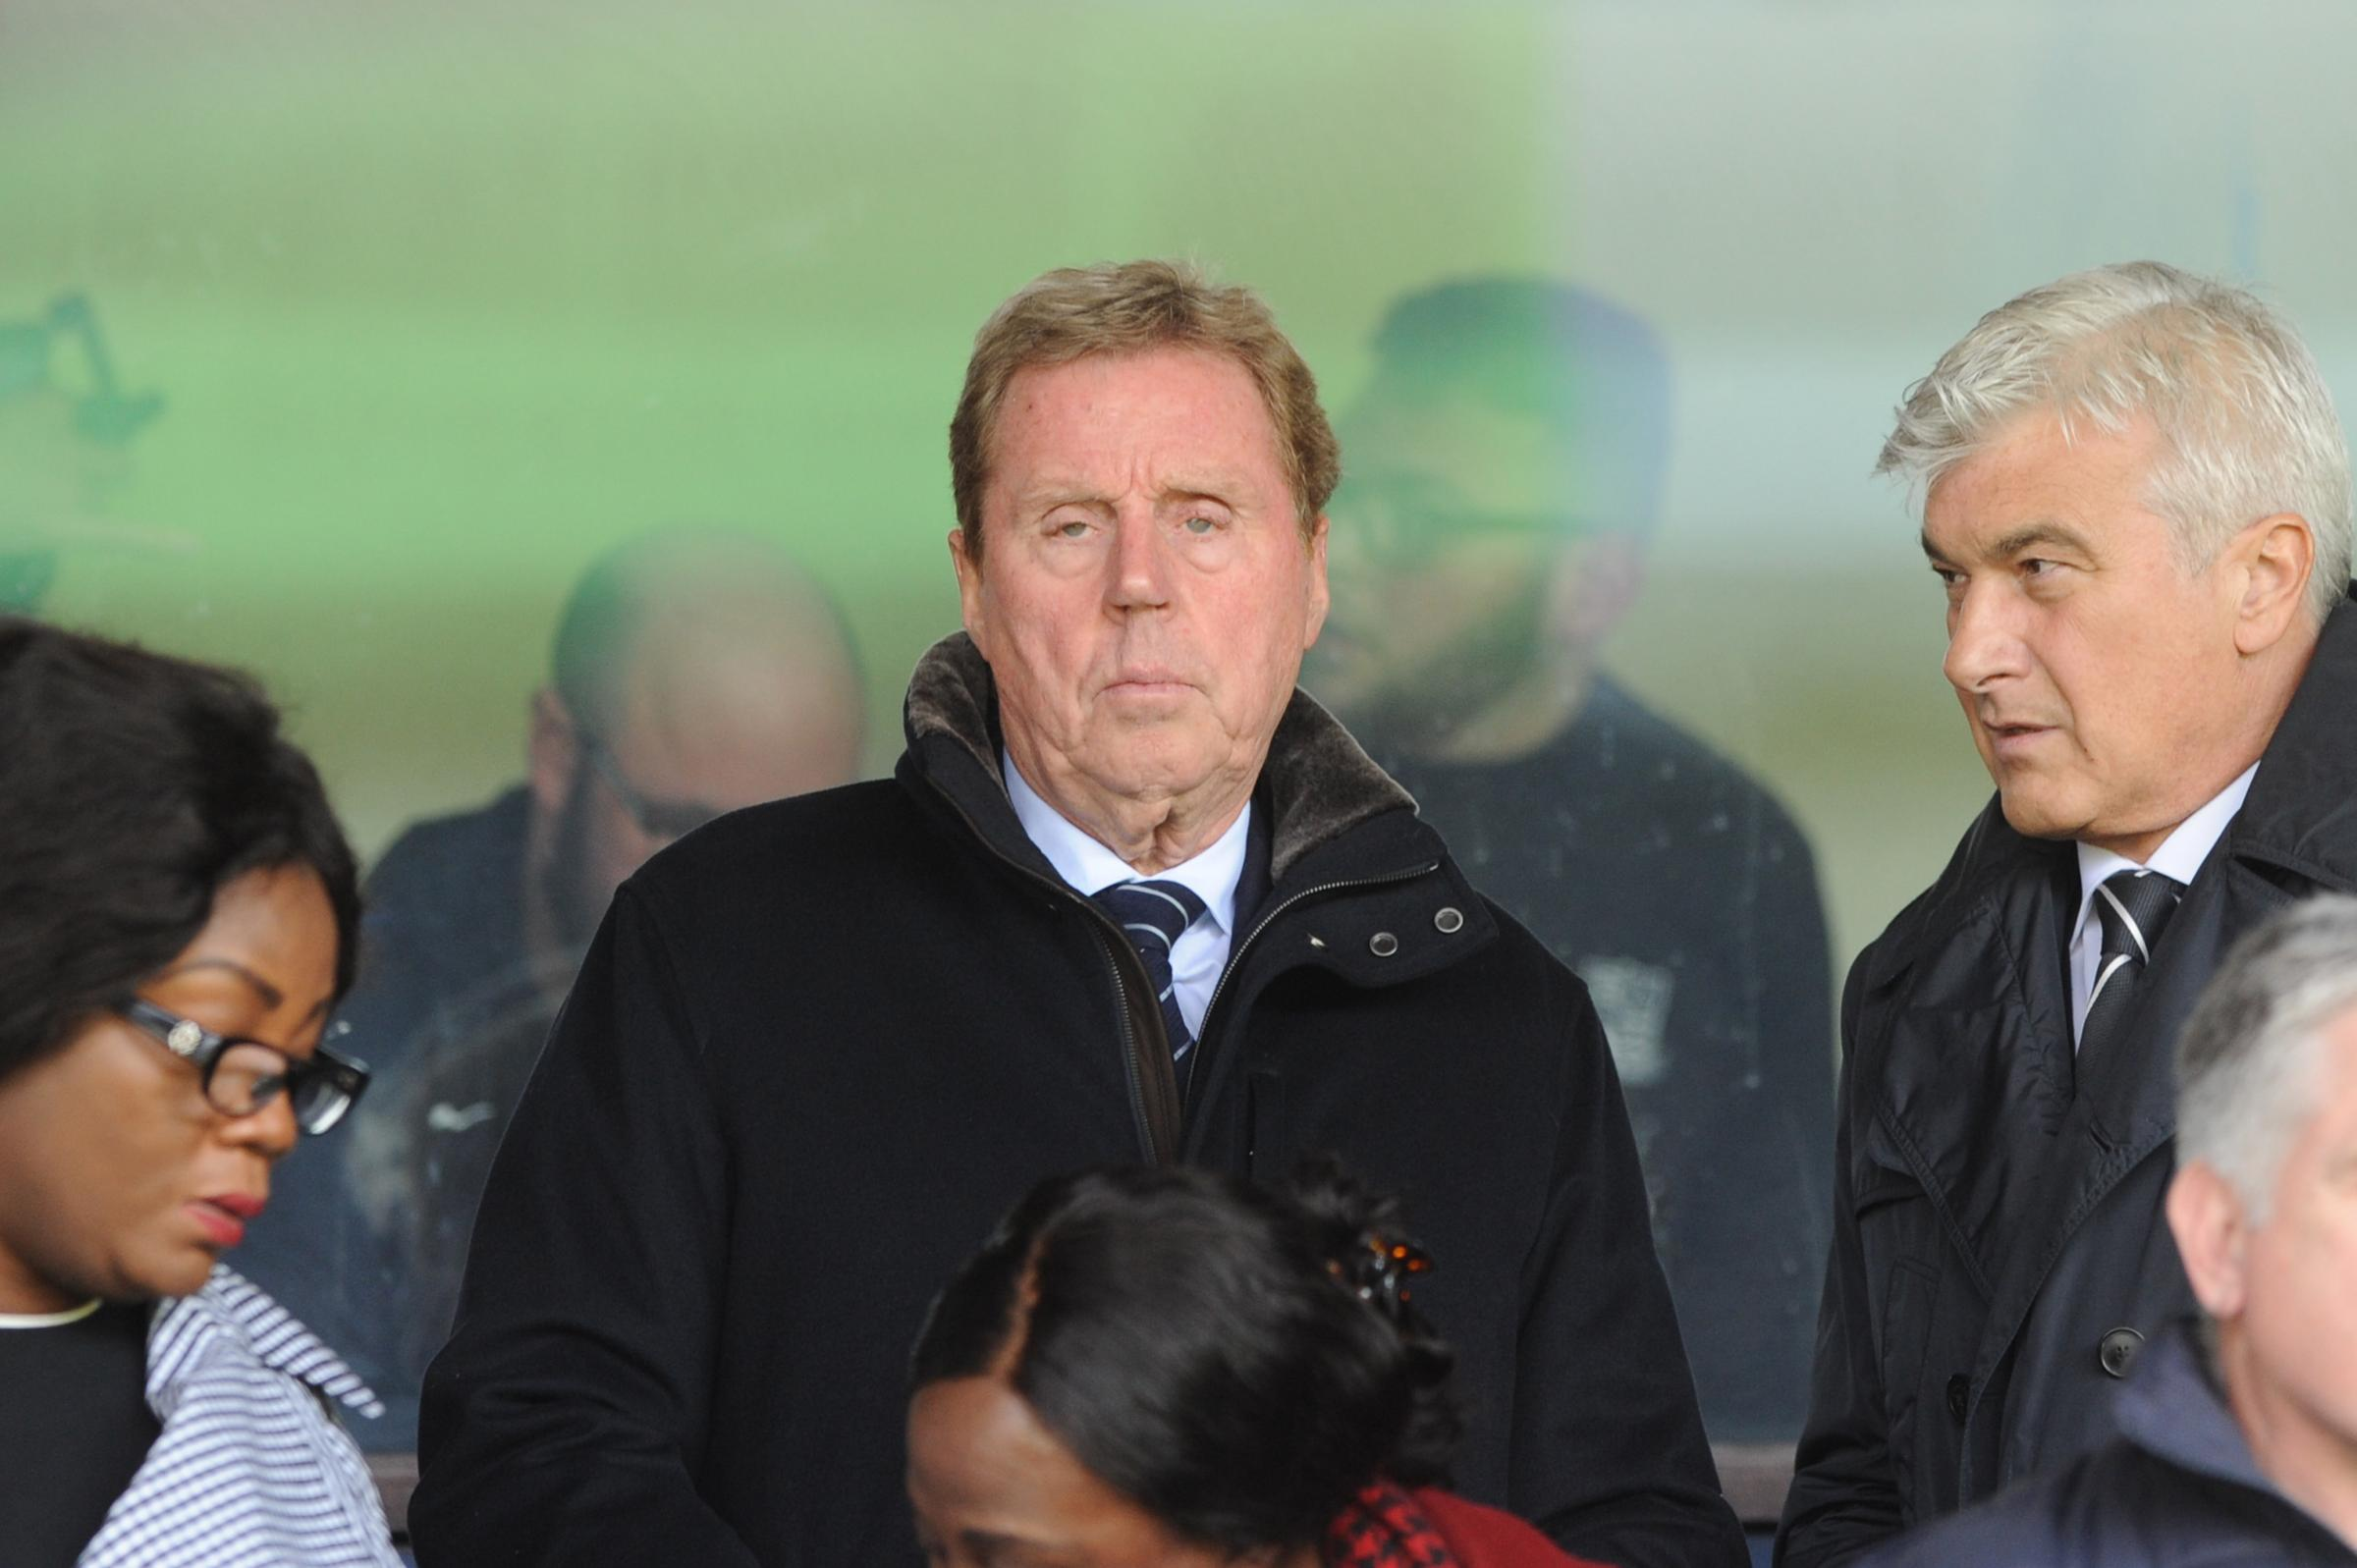 Giving his backing - Harry Redknapp feels Kevin Bond deserves to be appointed for longer by Southend United